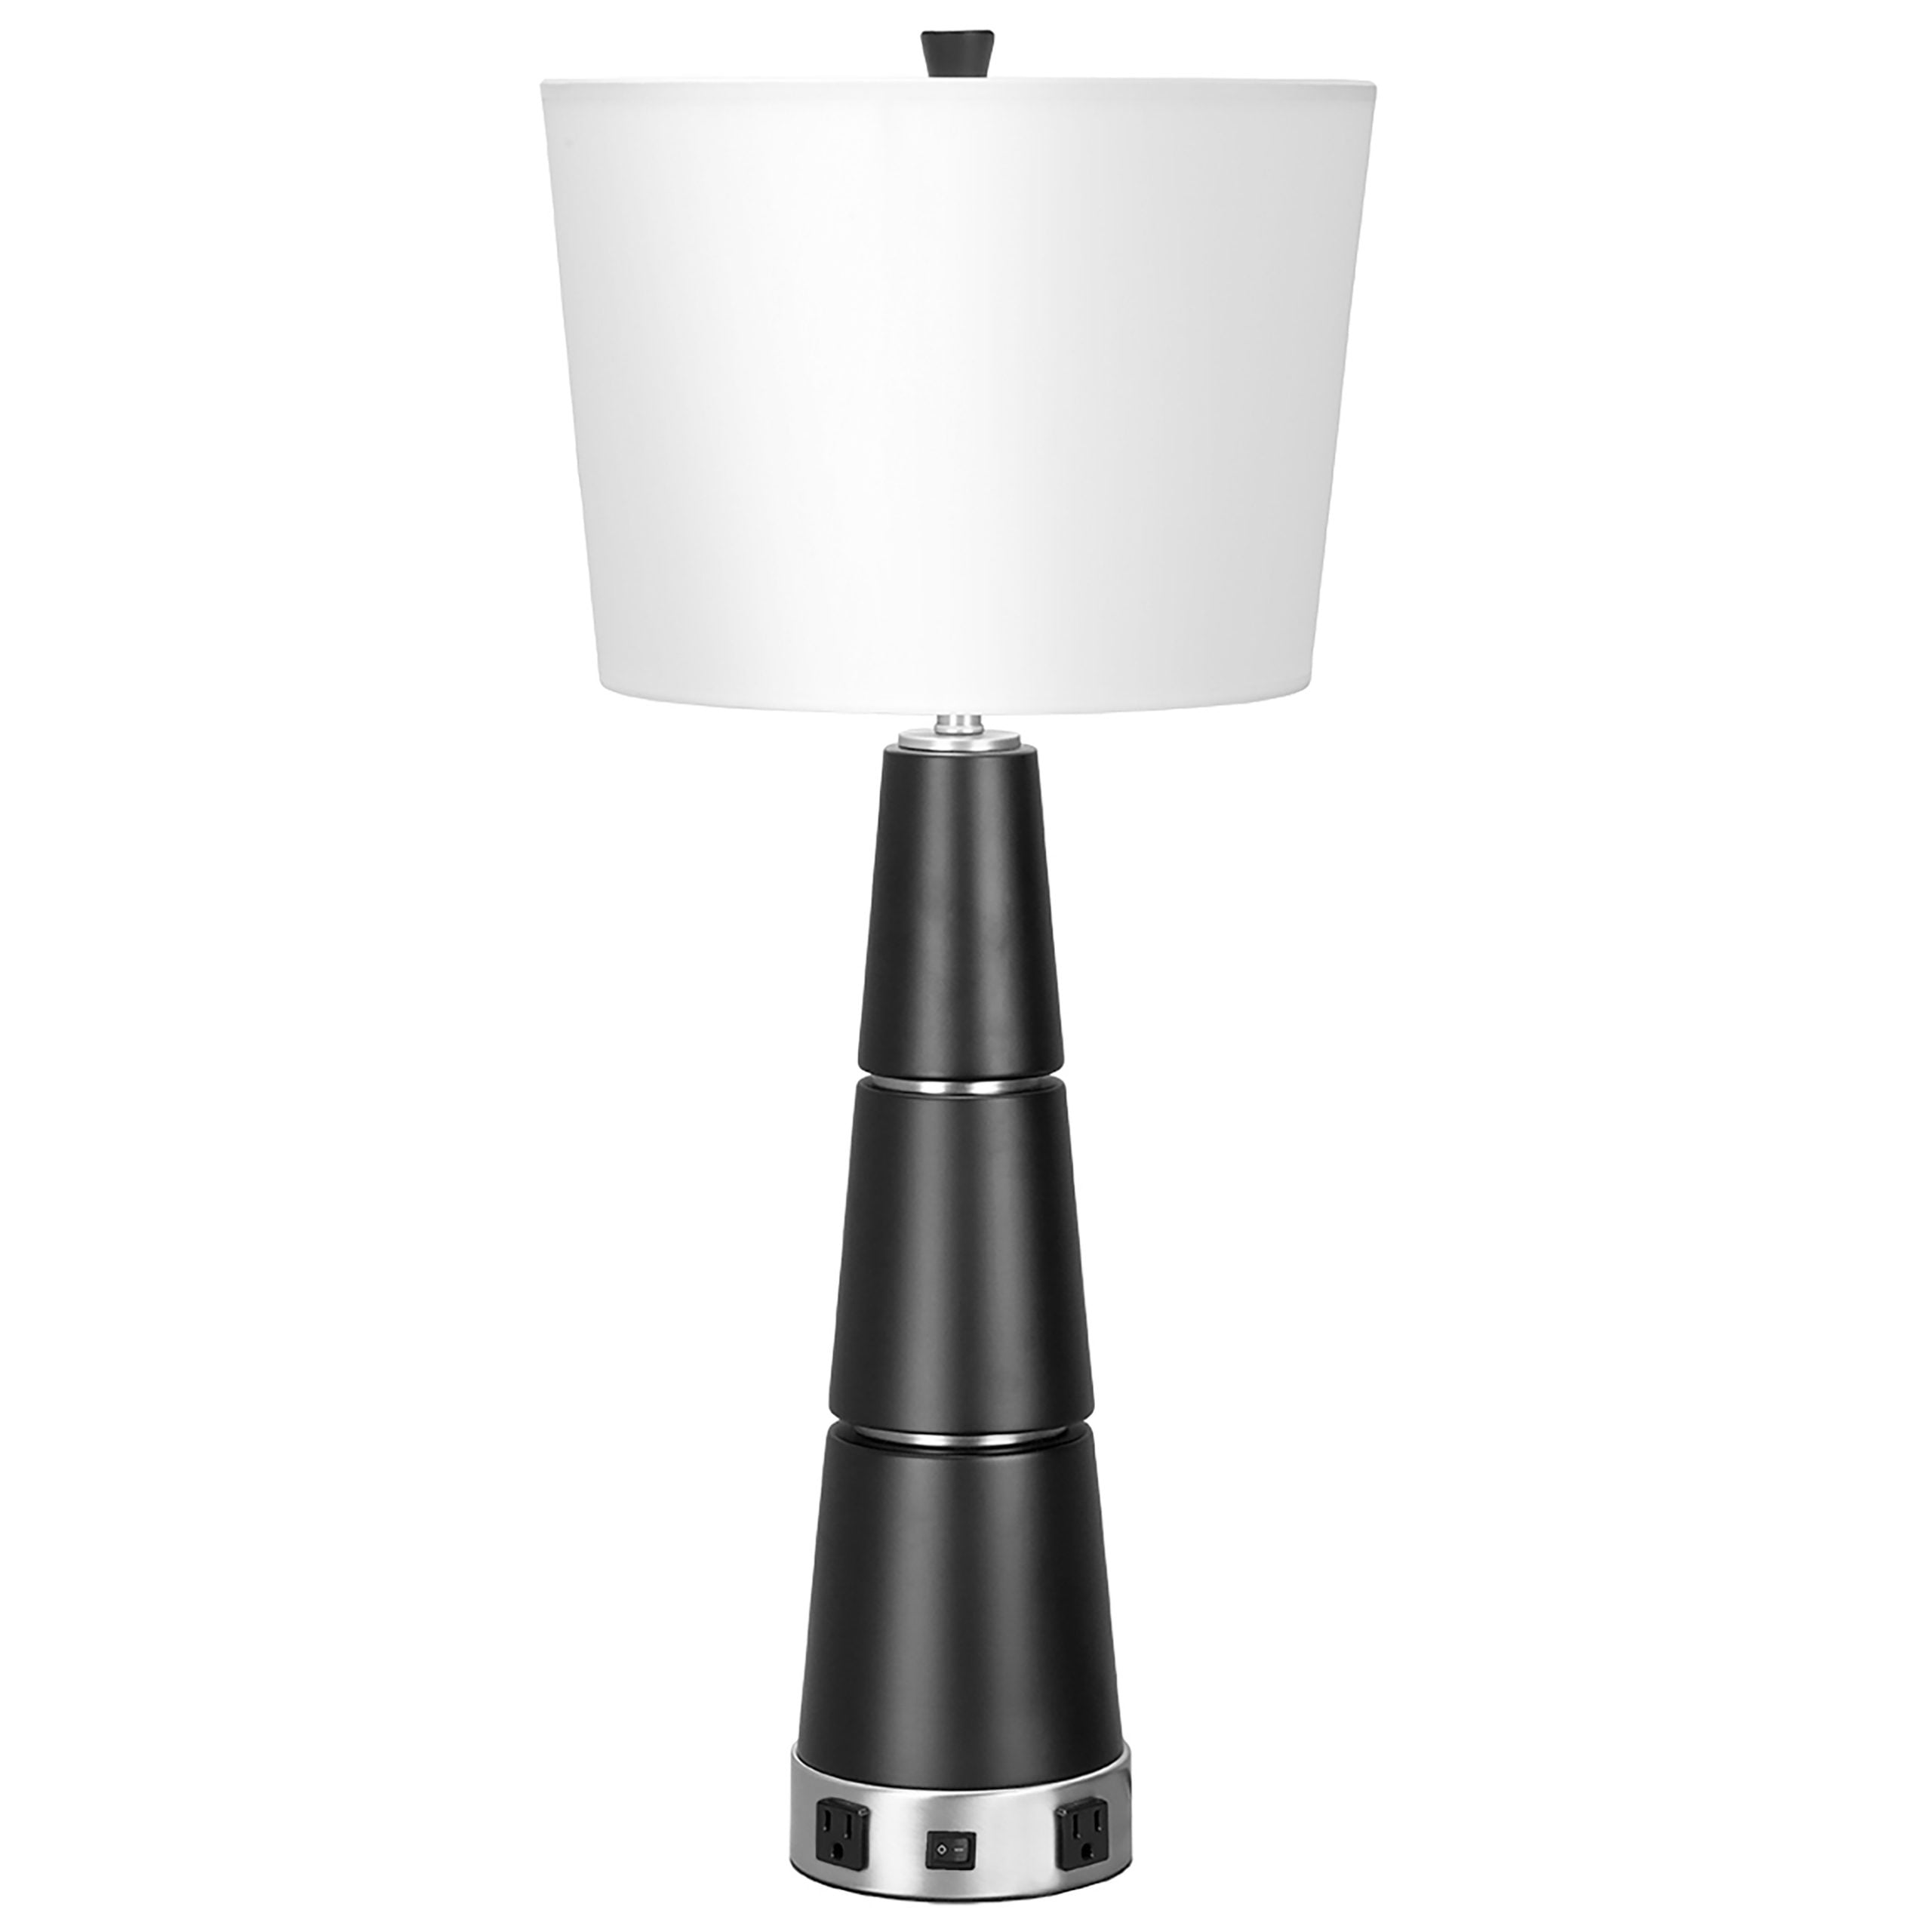 Serenity Single Table Lamp with 2 Outlets